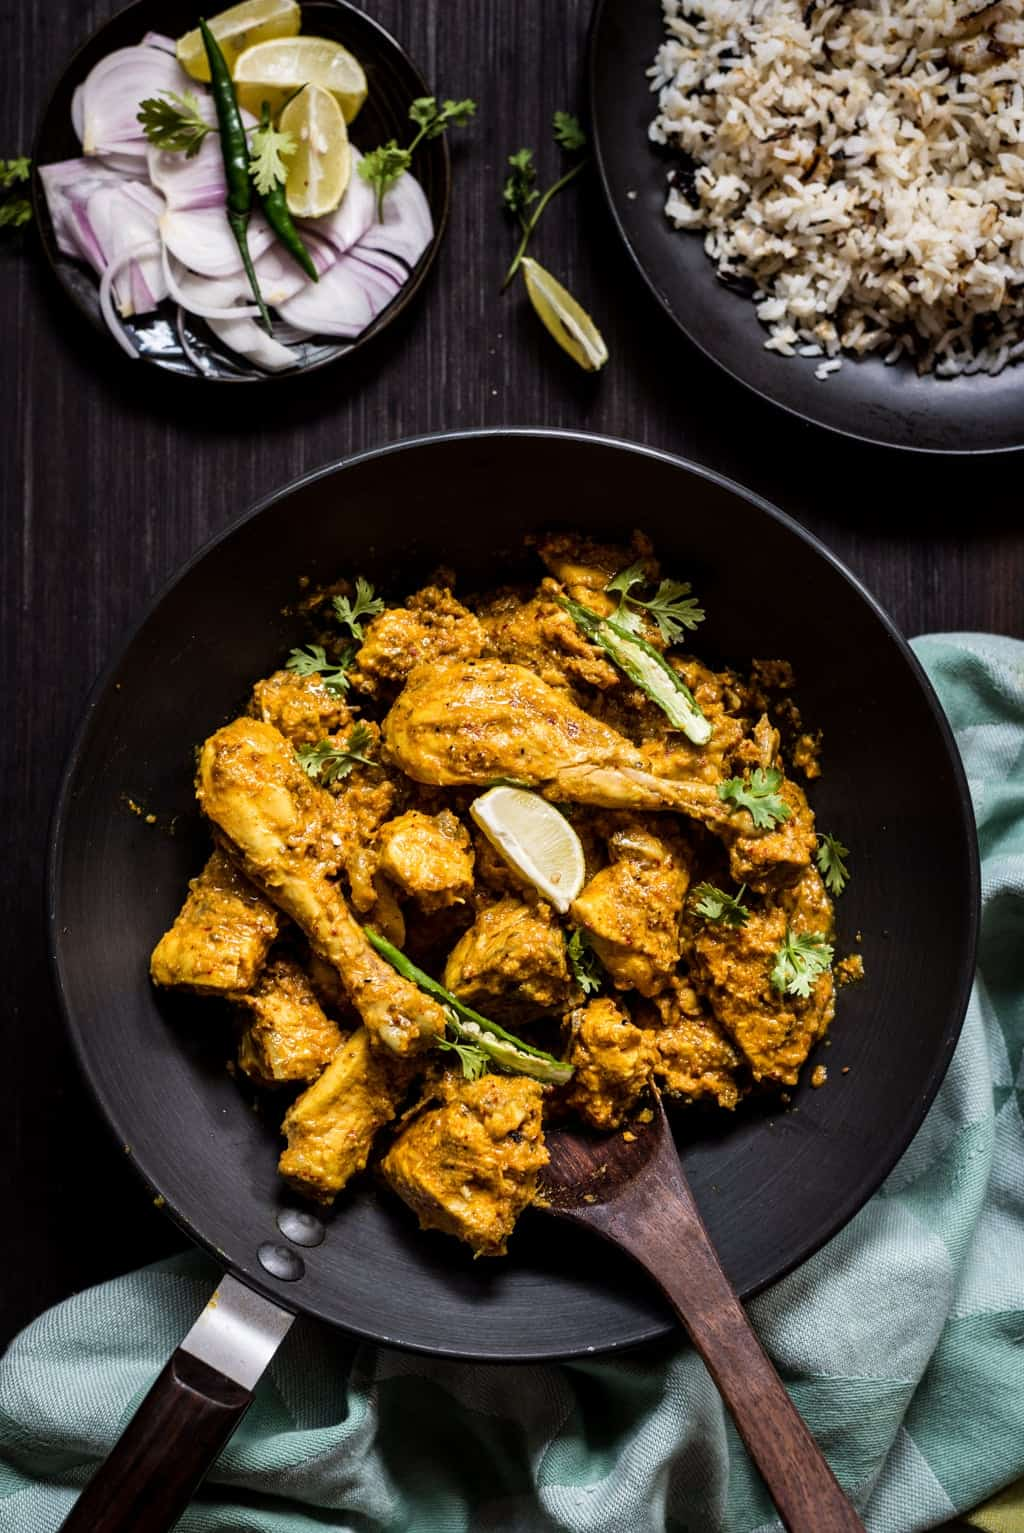 Zero oil chicken curry recipe the flavours of kitchen this chicken curry will taste best when you use fresh ground spices dont go for shortcut and use readymade powders print recipe forumfinder Choice Image